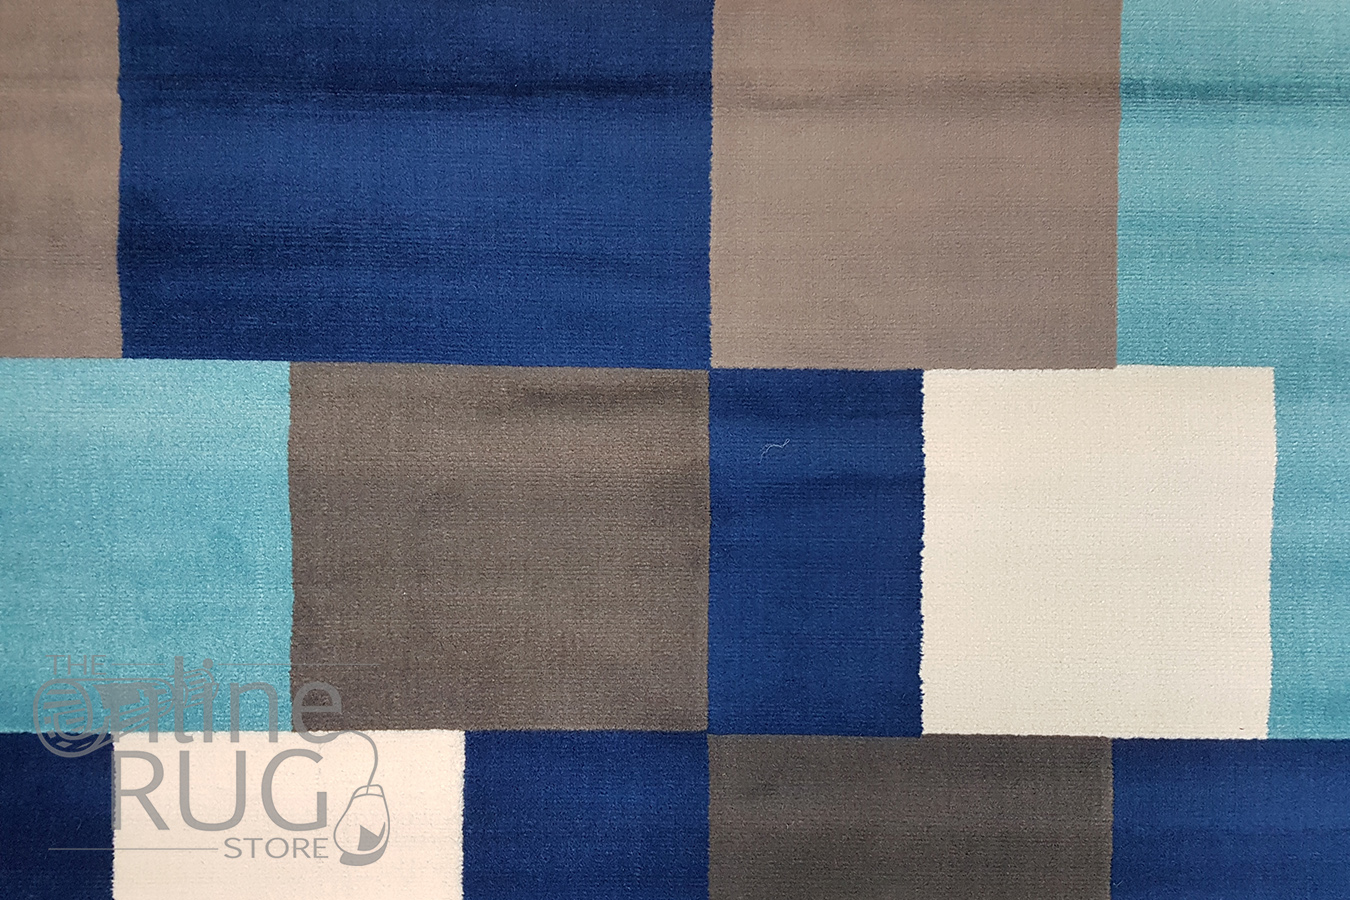 Industry Blue Multicoloured Tiles Rug The Online Rug Store